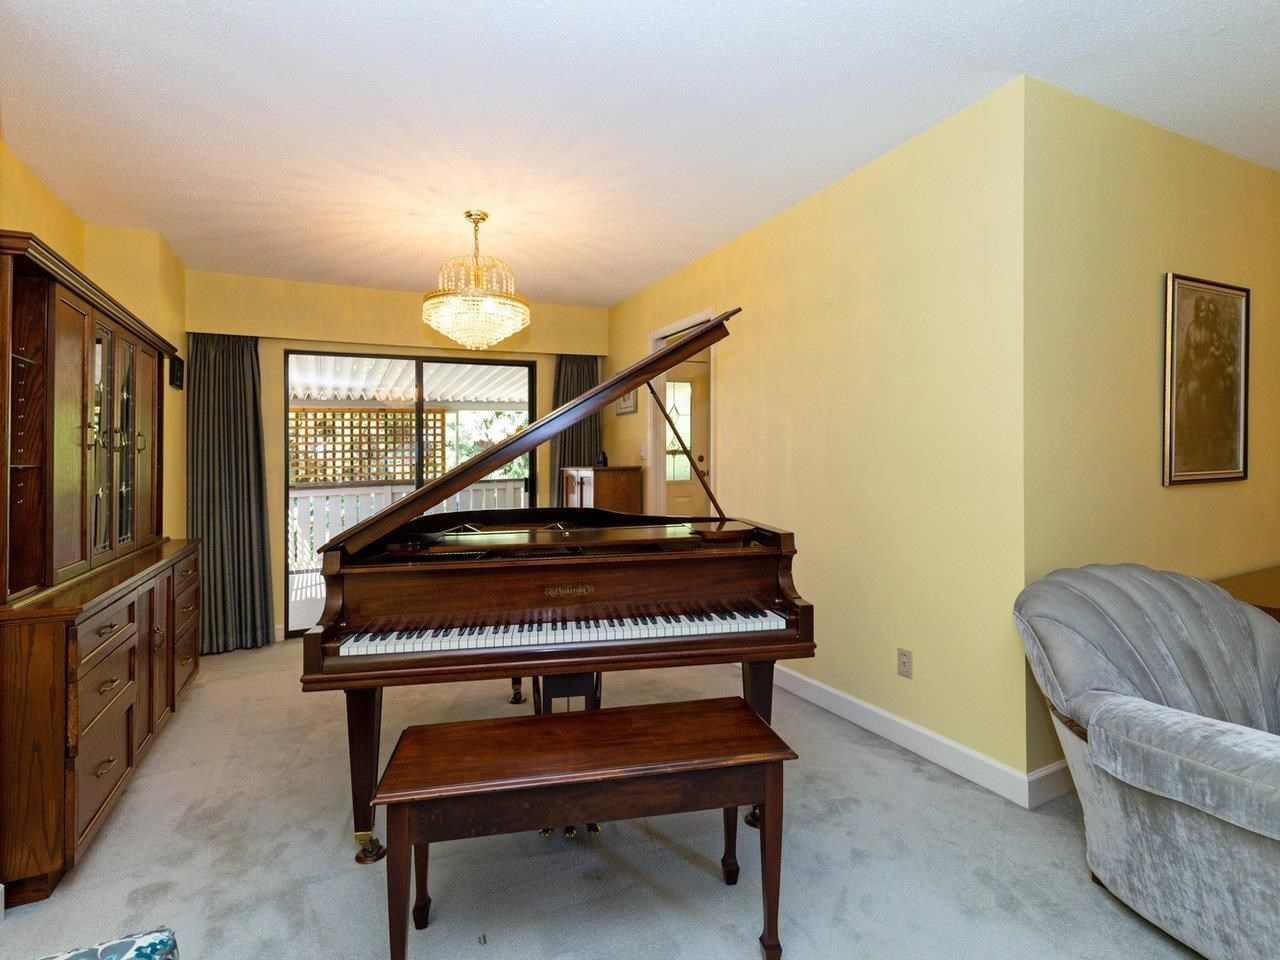 Photo 5: Photos: 10225 142A Street in Surrey: Whalley House for sale (North Surrey)  : MLS®# R2596966